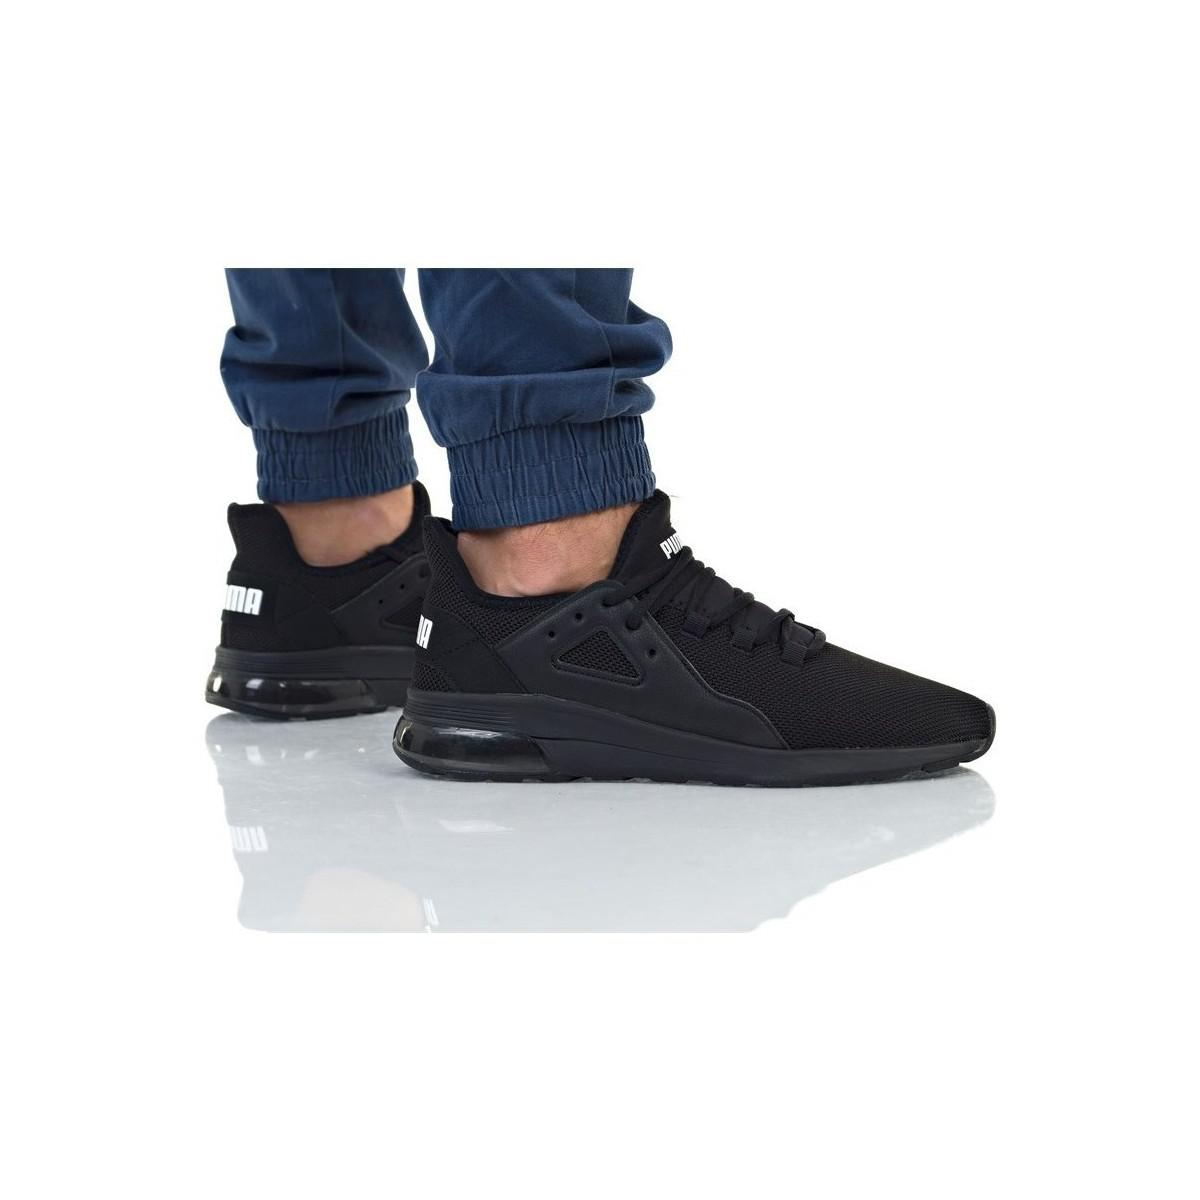 8de3787a9530 PUMA Electron Street Men s Shoes (trainers) In Black in Black for ...